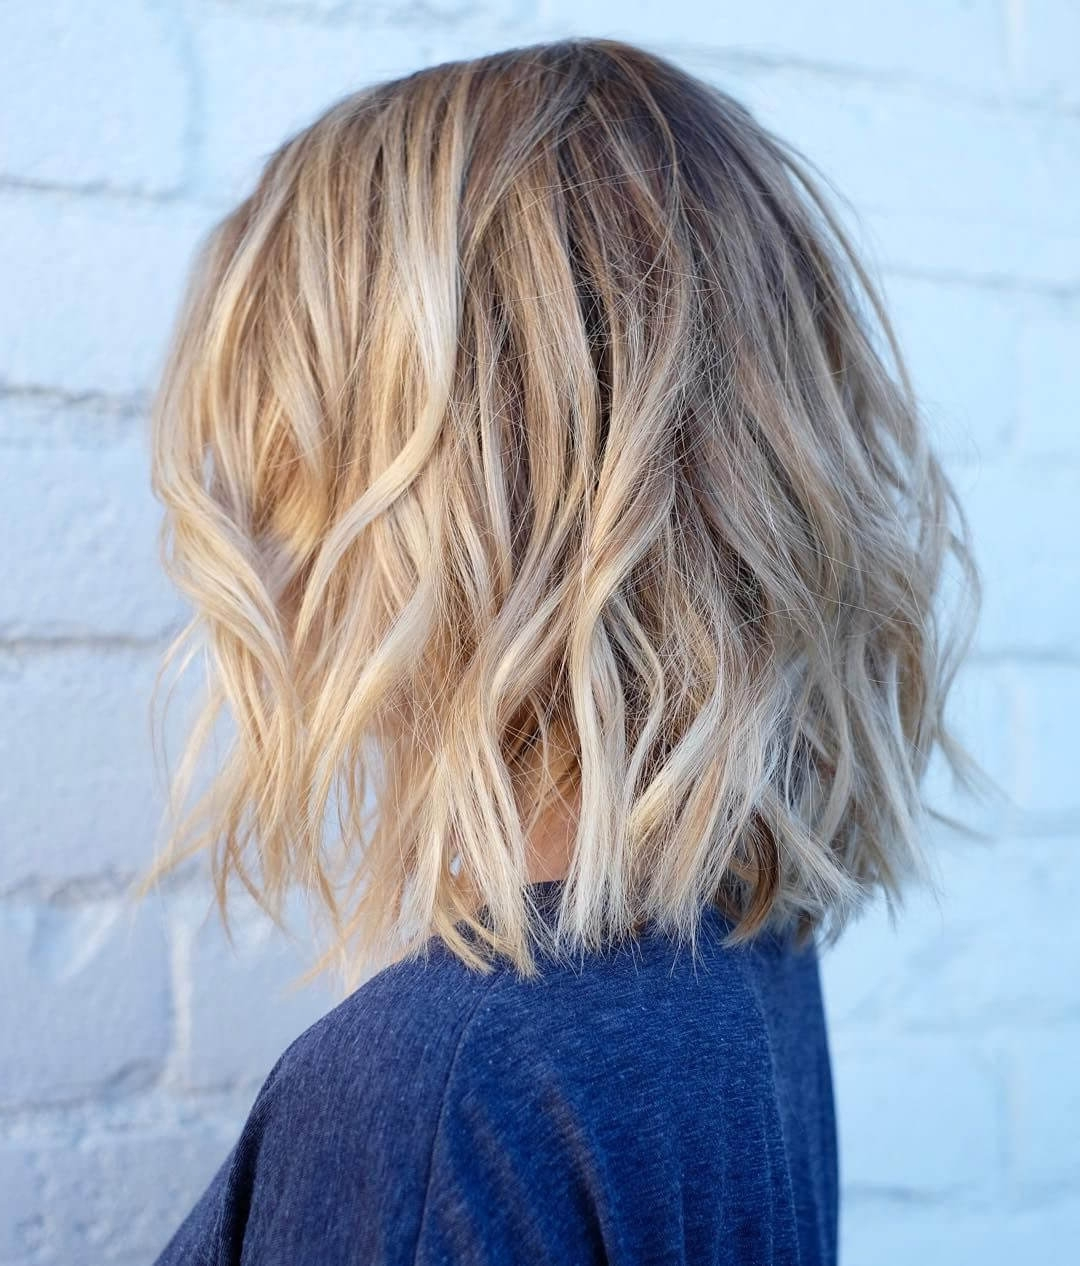 50 Fresh Short Blonde Hair Ideas To Update Your Style In 2018 In Recent Ash Blonde Lob With Subtle Waves (View 18 of 20)